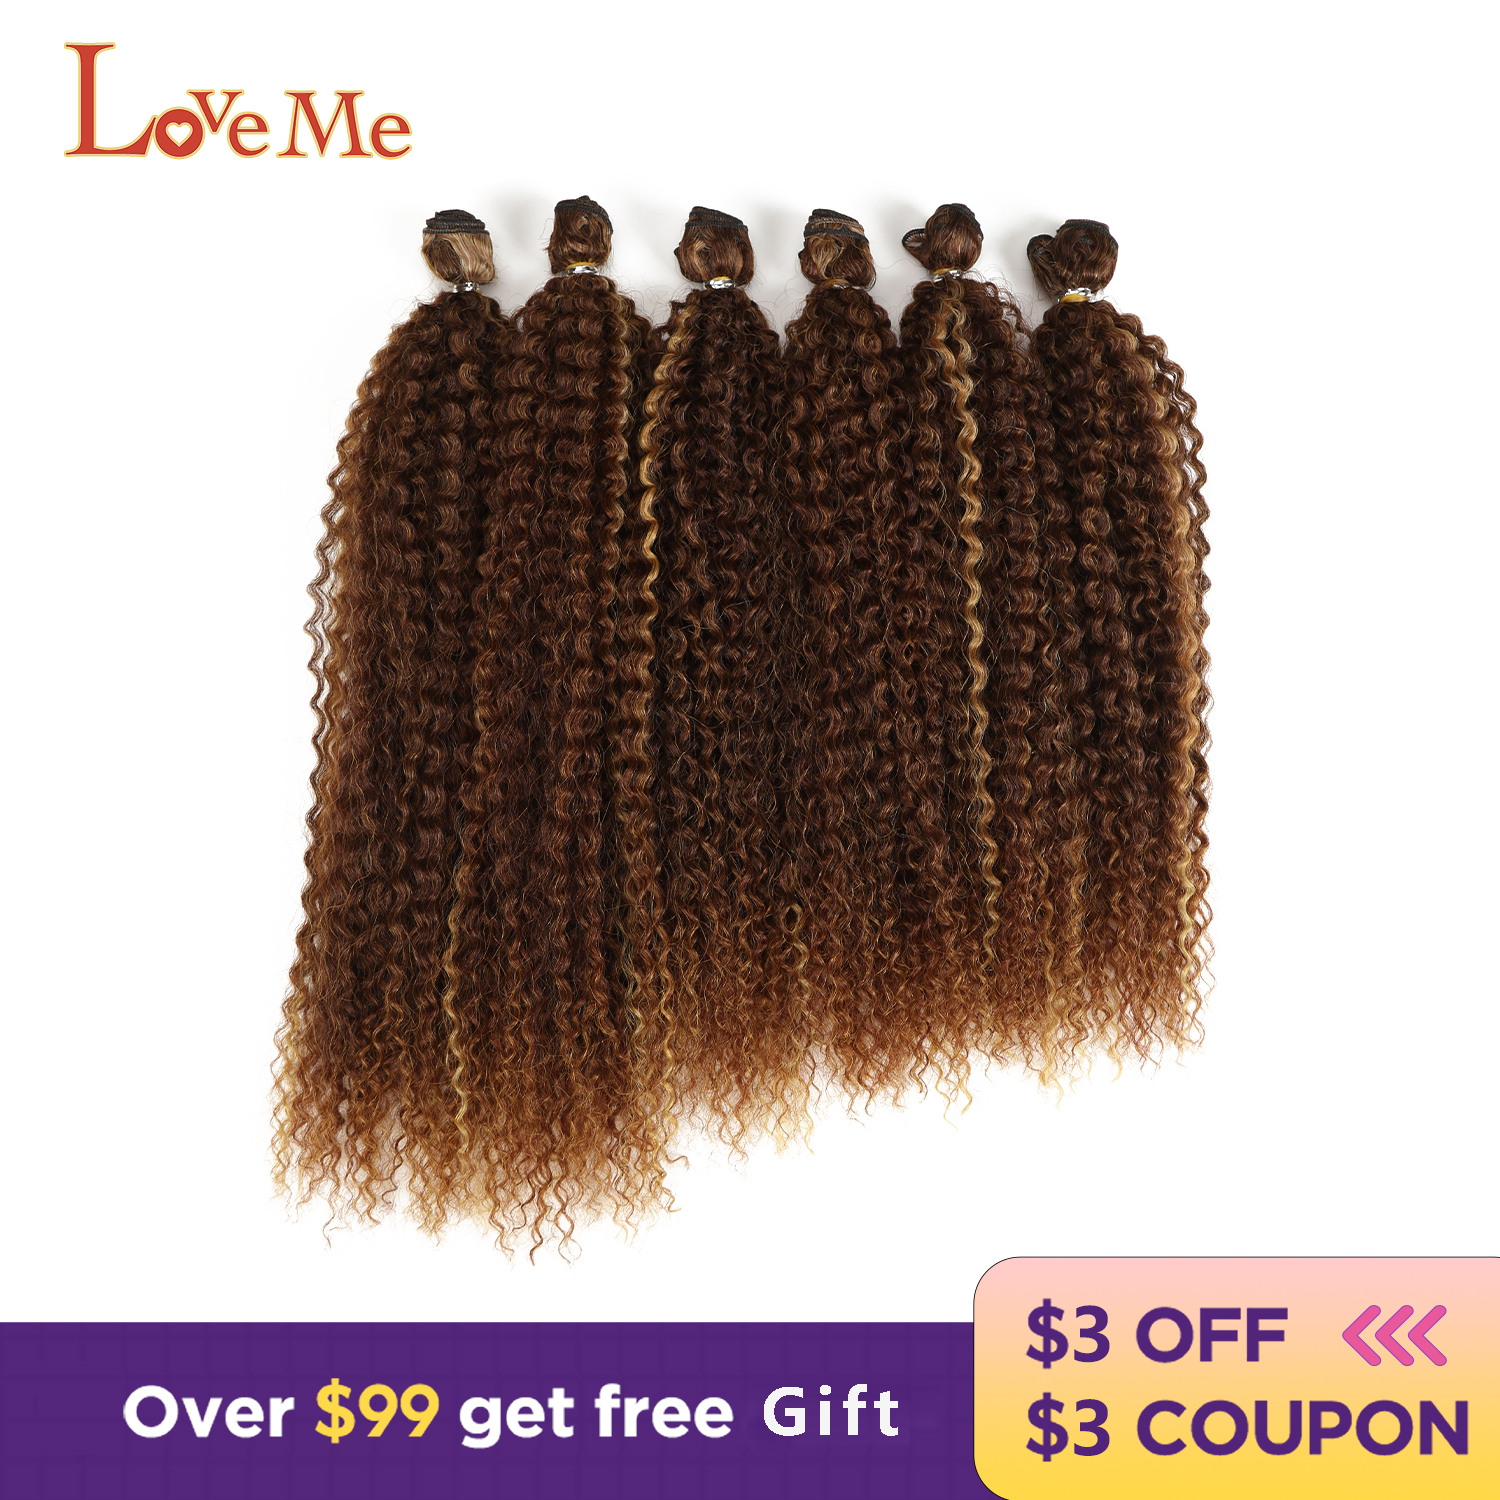 LOVE ME Afro Kinky Curly Synthetic Hair Natural Hair Extensions Ombre Heat Resistant Weave Hair Bundles For Black Women